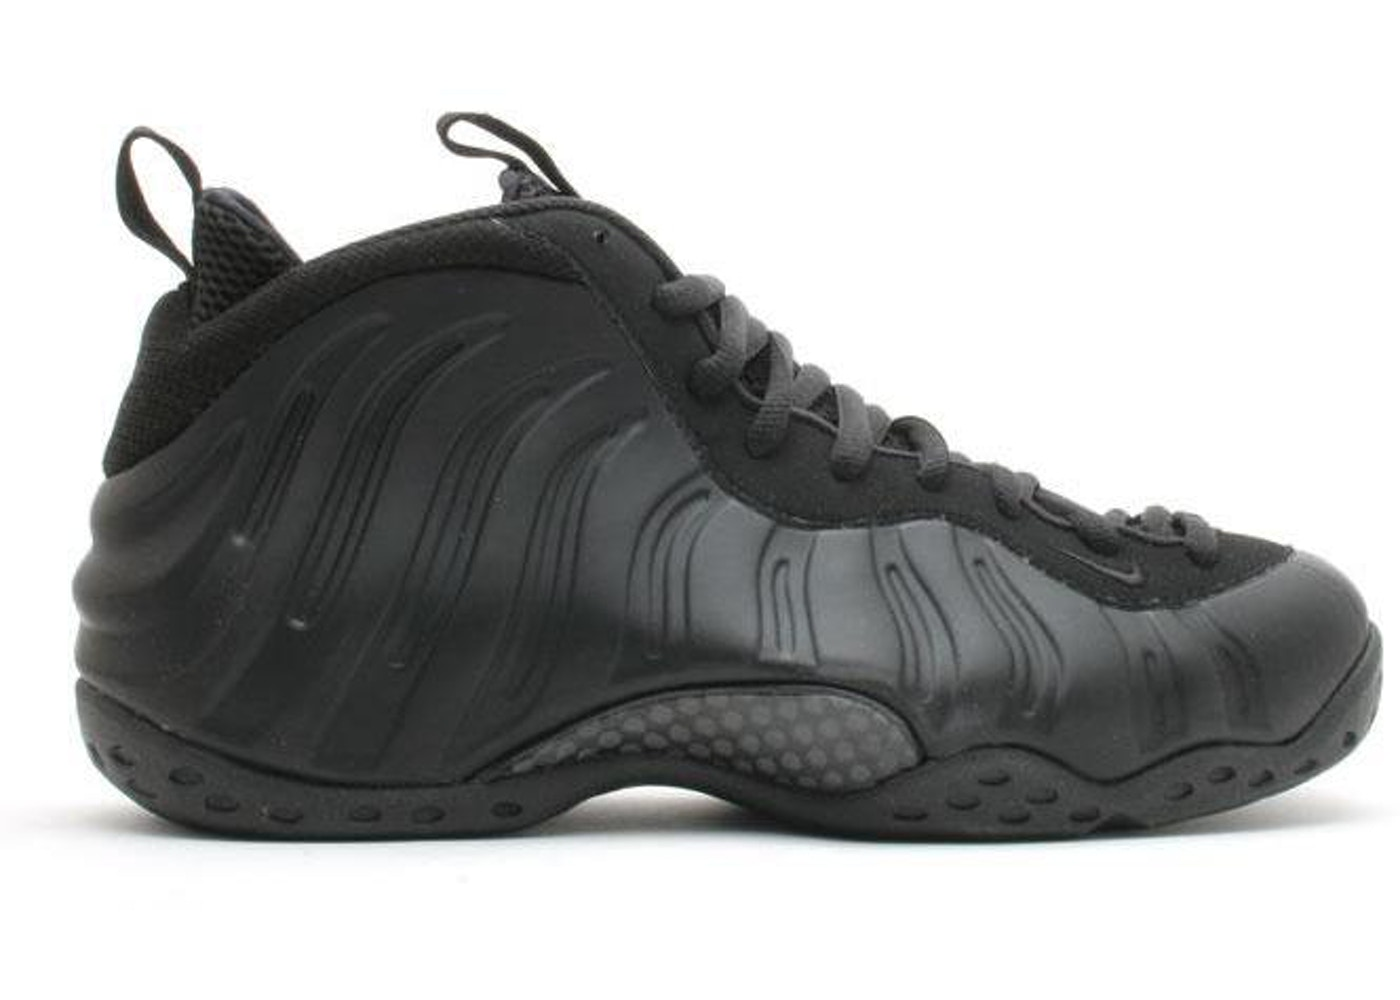 d7516f54b57 Air Foamposite One Anthracite